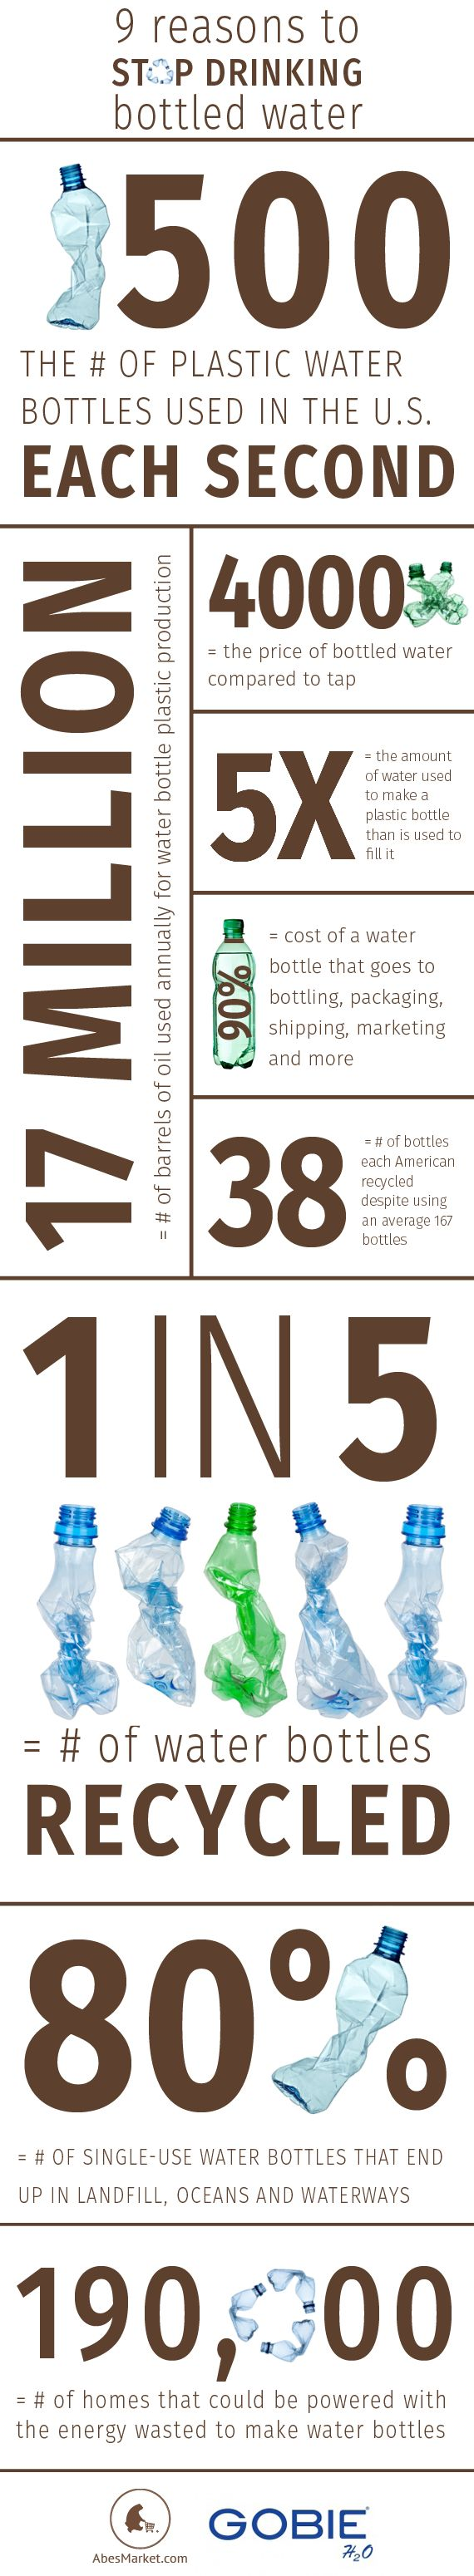 9 Reasons to Stop Drinking Bottled Water #EarthDay #water